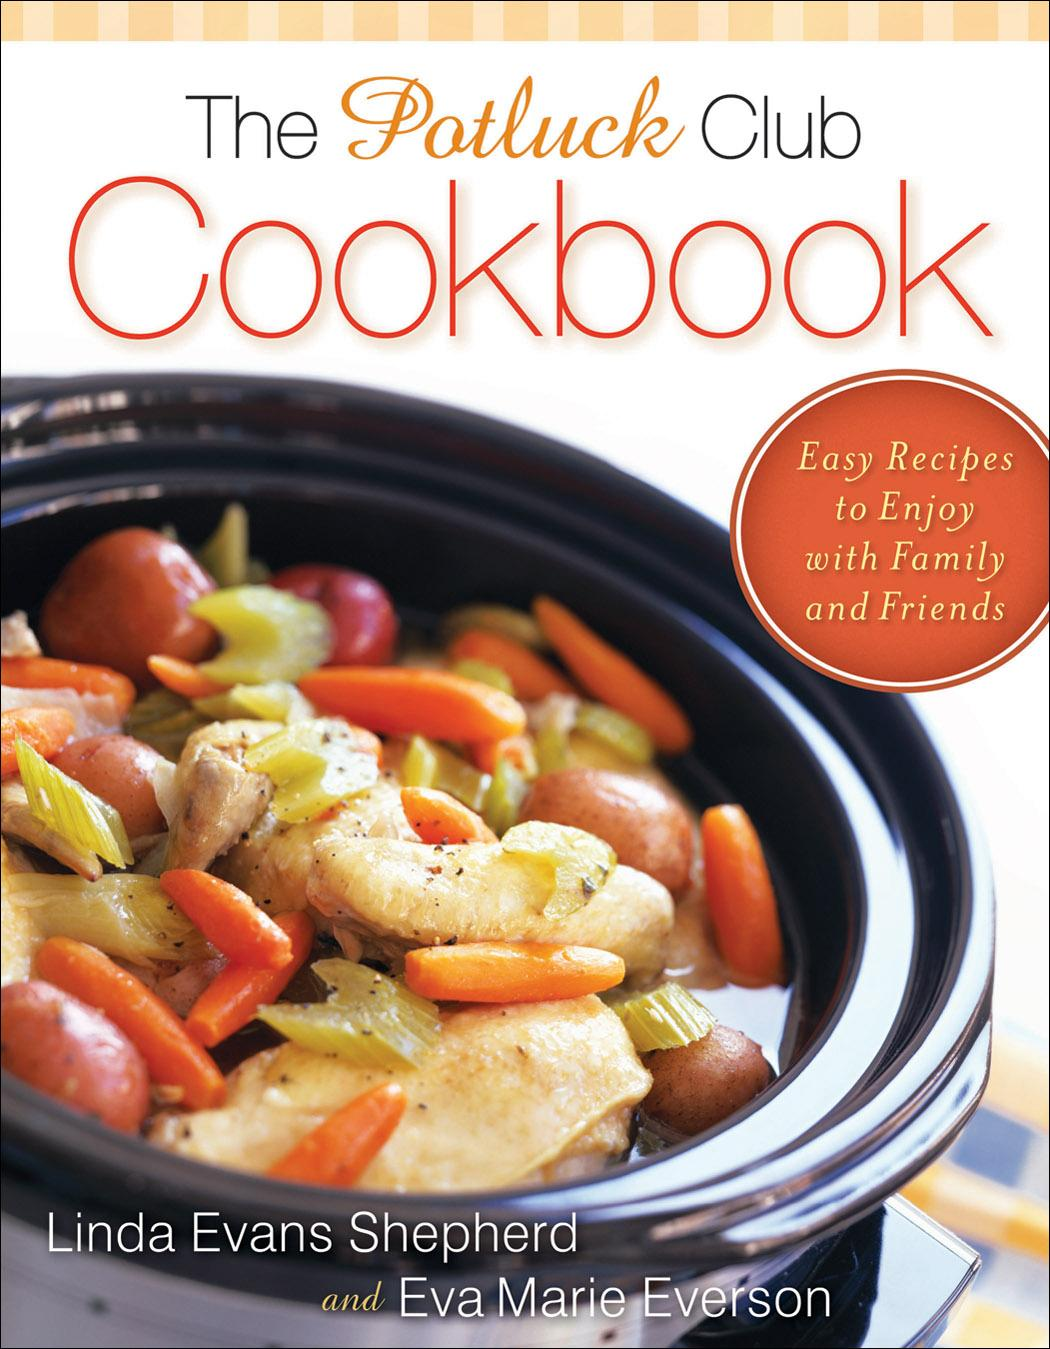 Potluck Club Cookbook, The: Easy Recipes to Enjoy with Family and Friends EB9781441204561